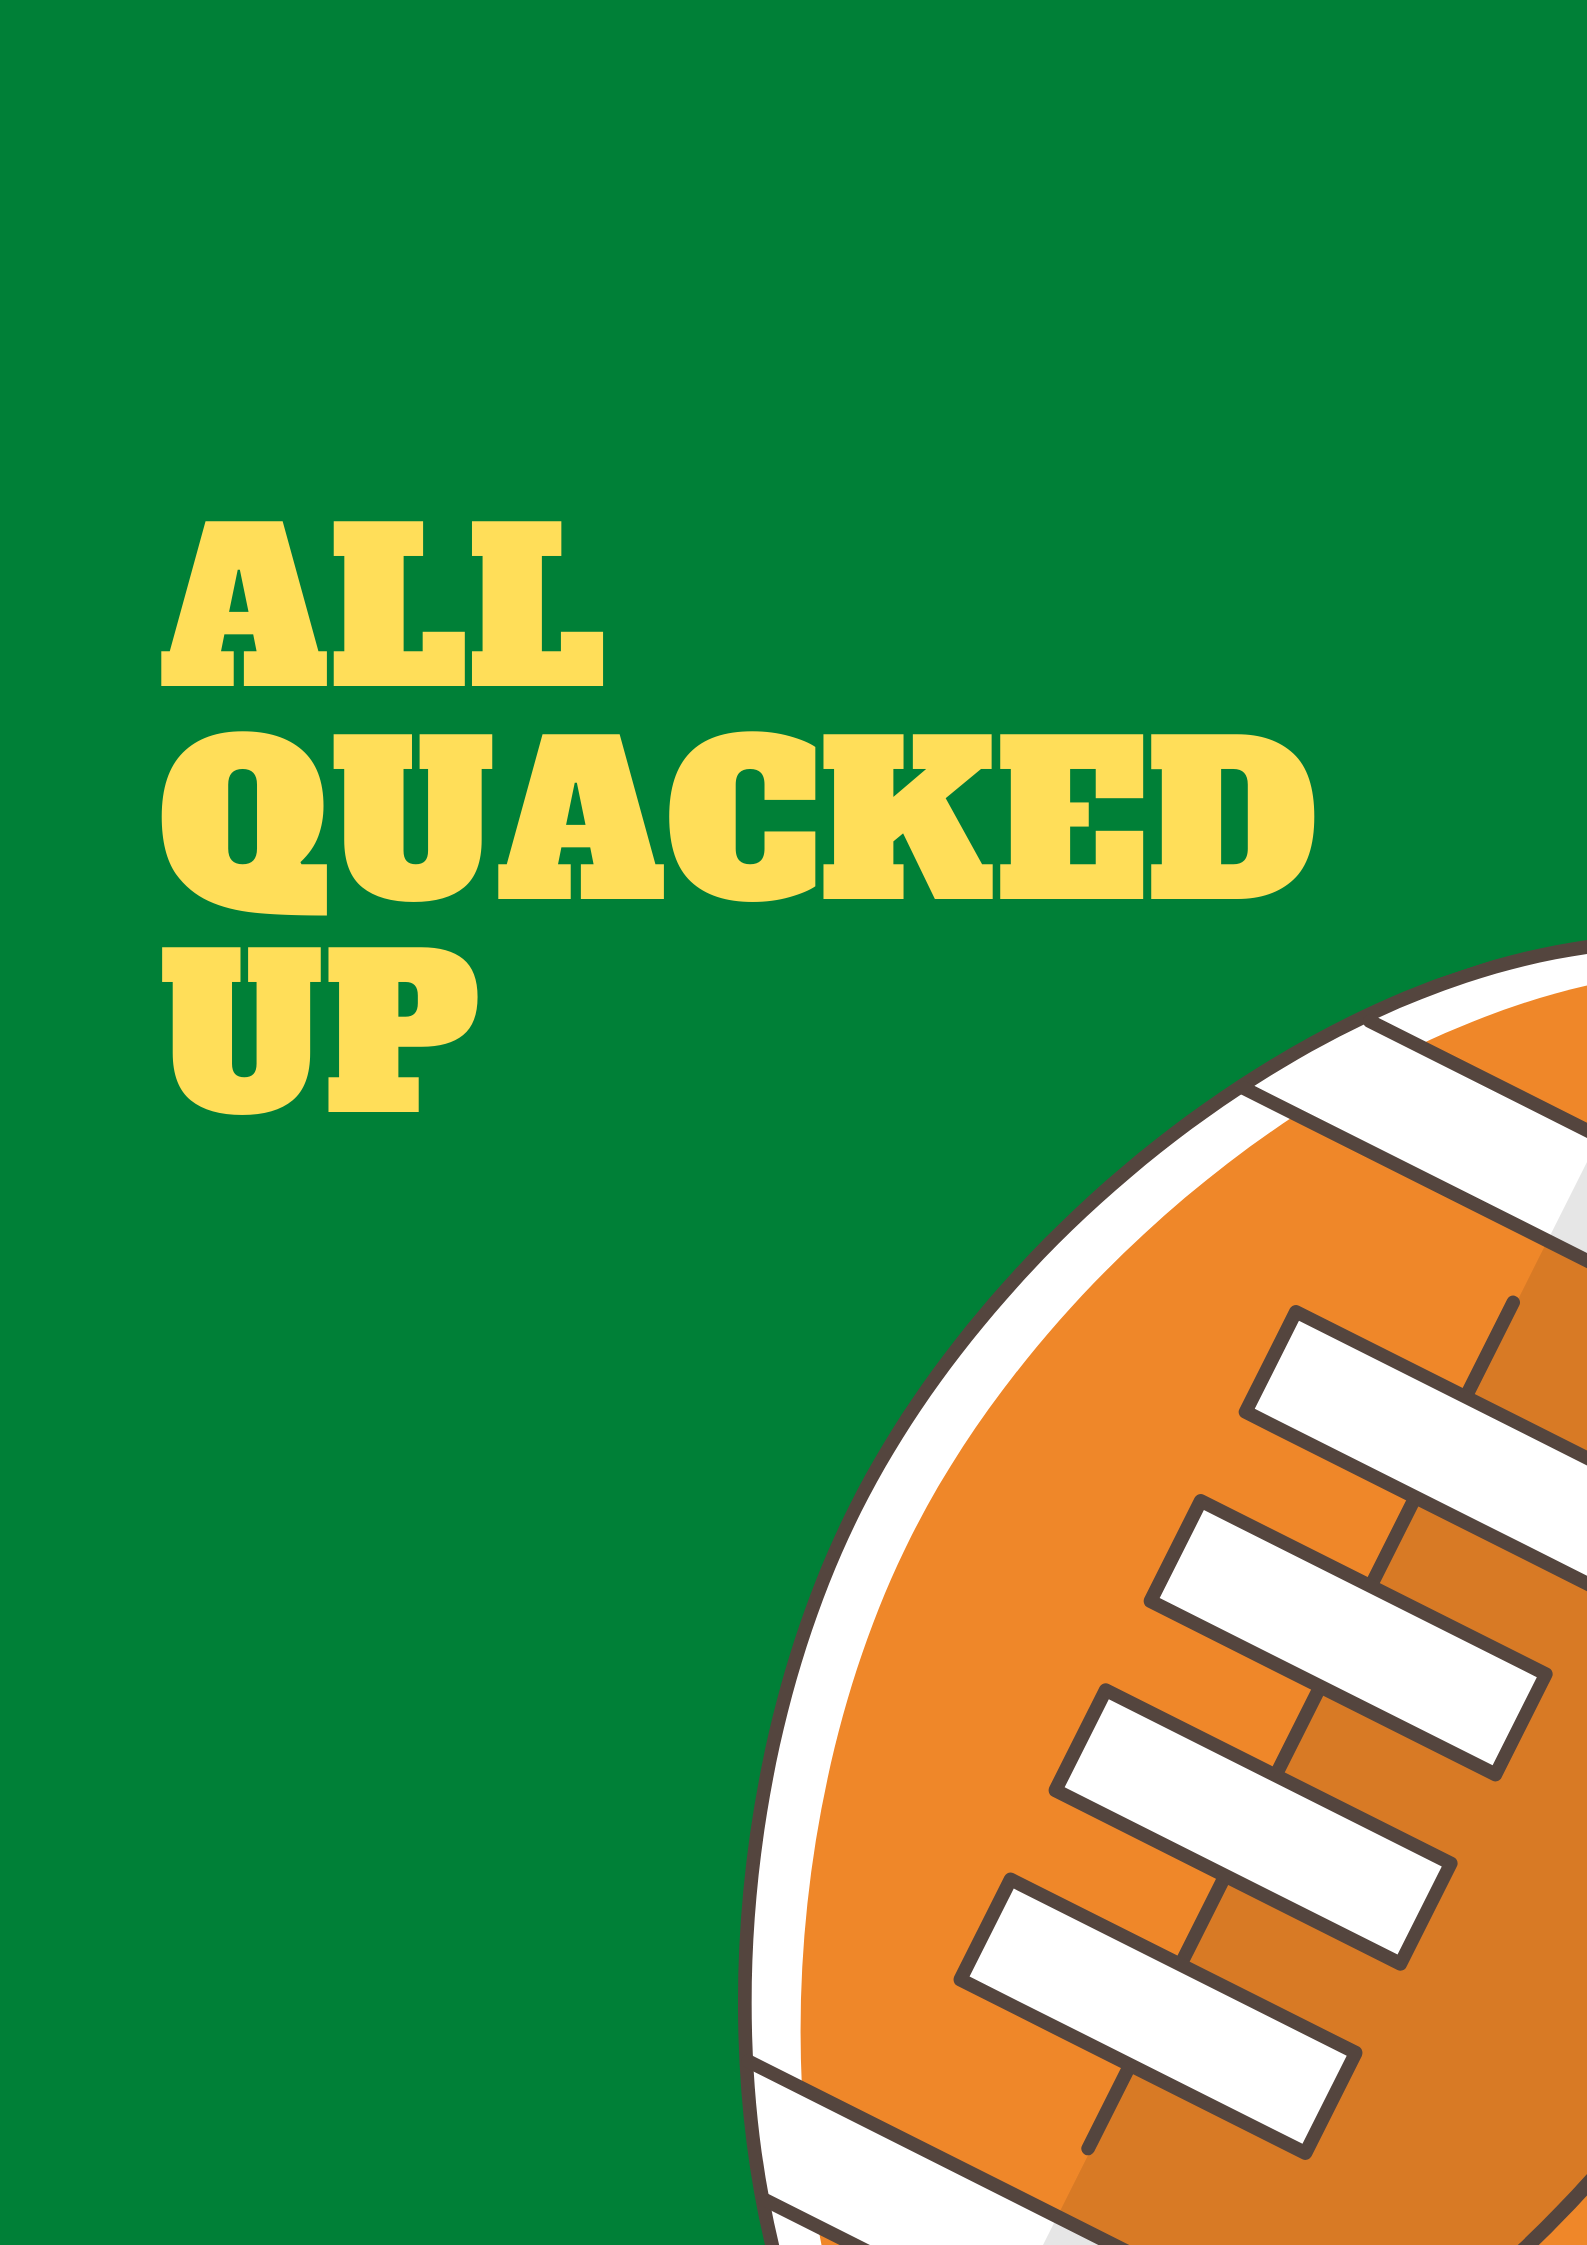 All Quacked Up! Presented by Coors Light! Web Contest